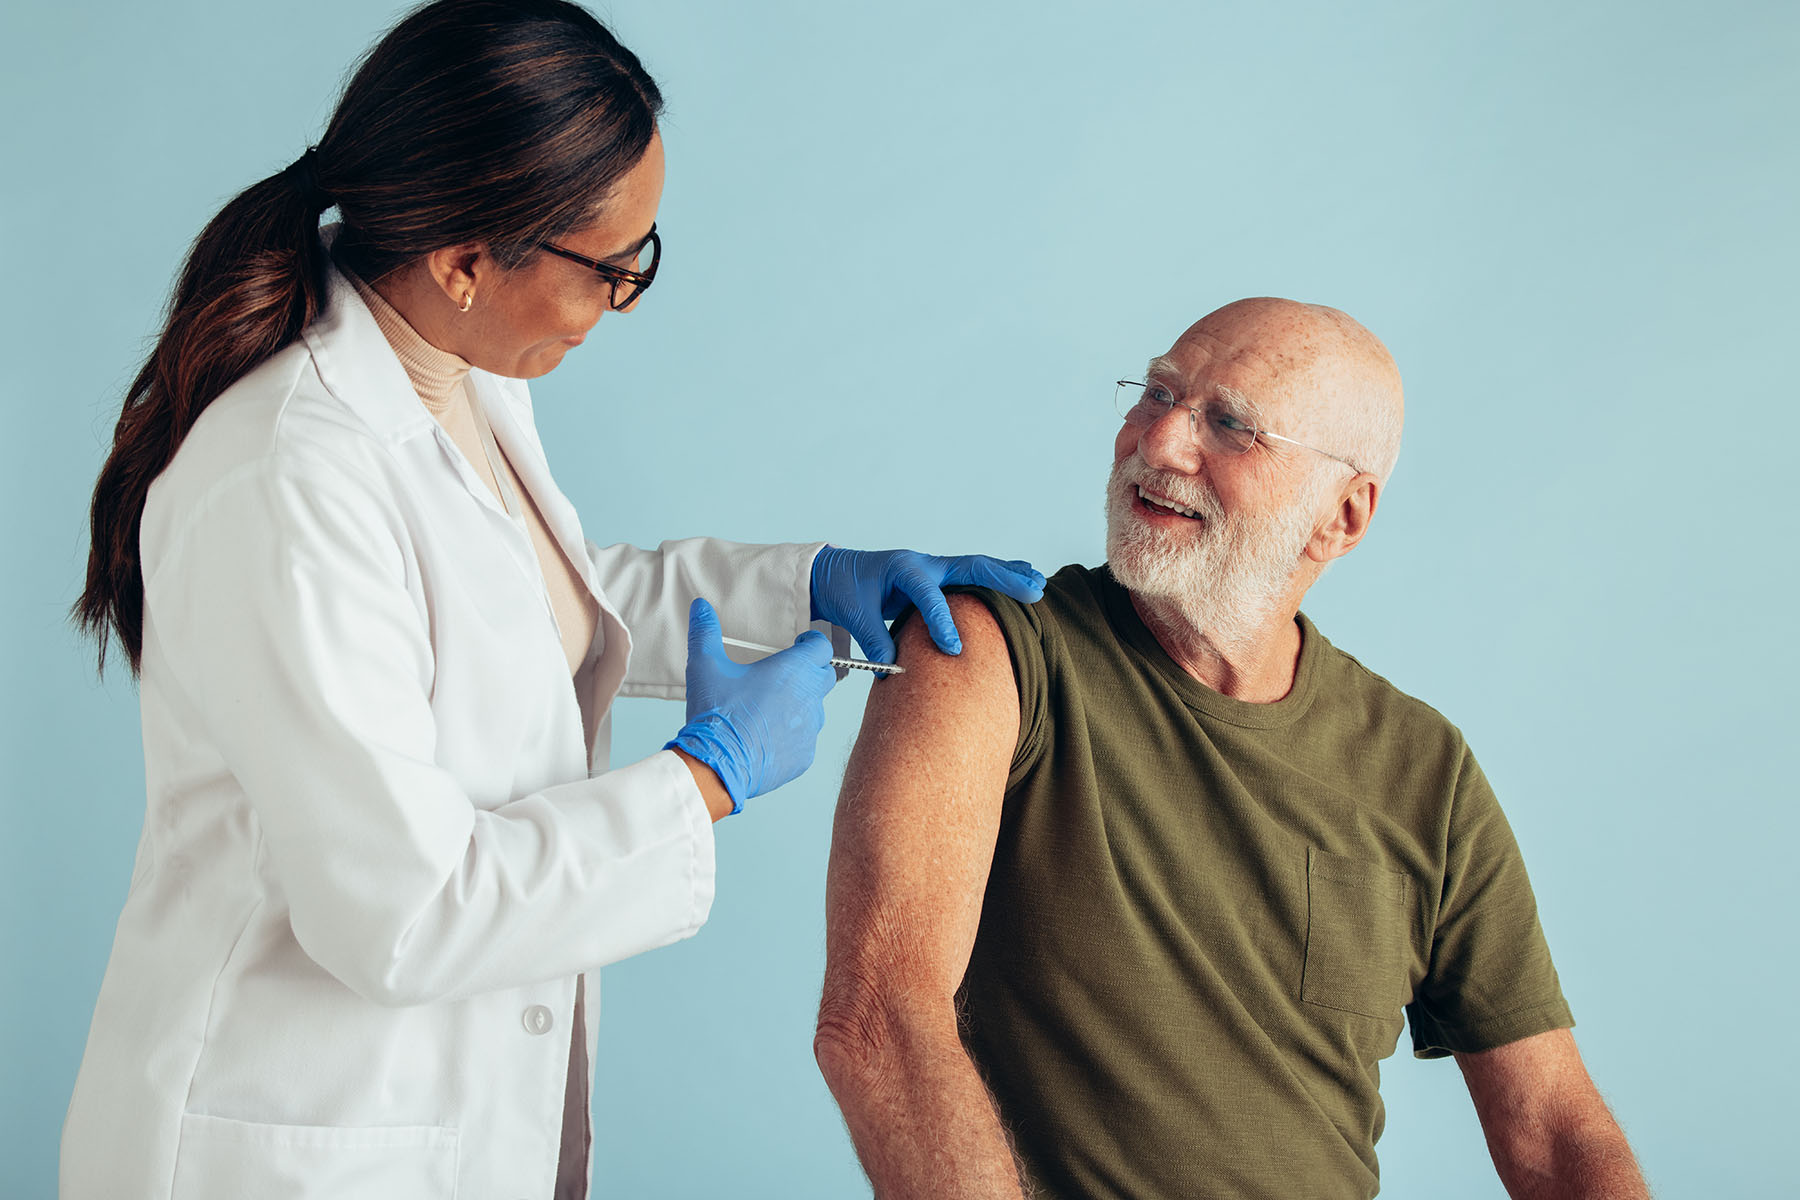 Senior man getting vaccine dose from a doctor. Doctor giving vaccine to a senior man on blue background.